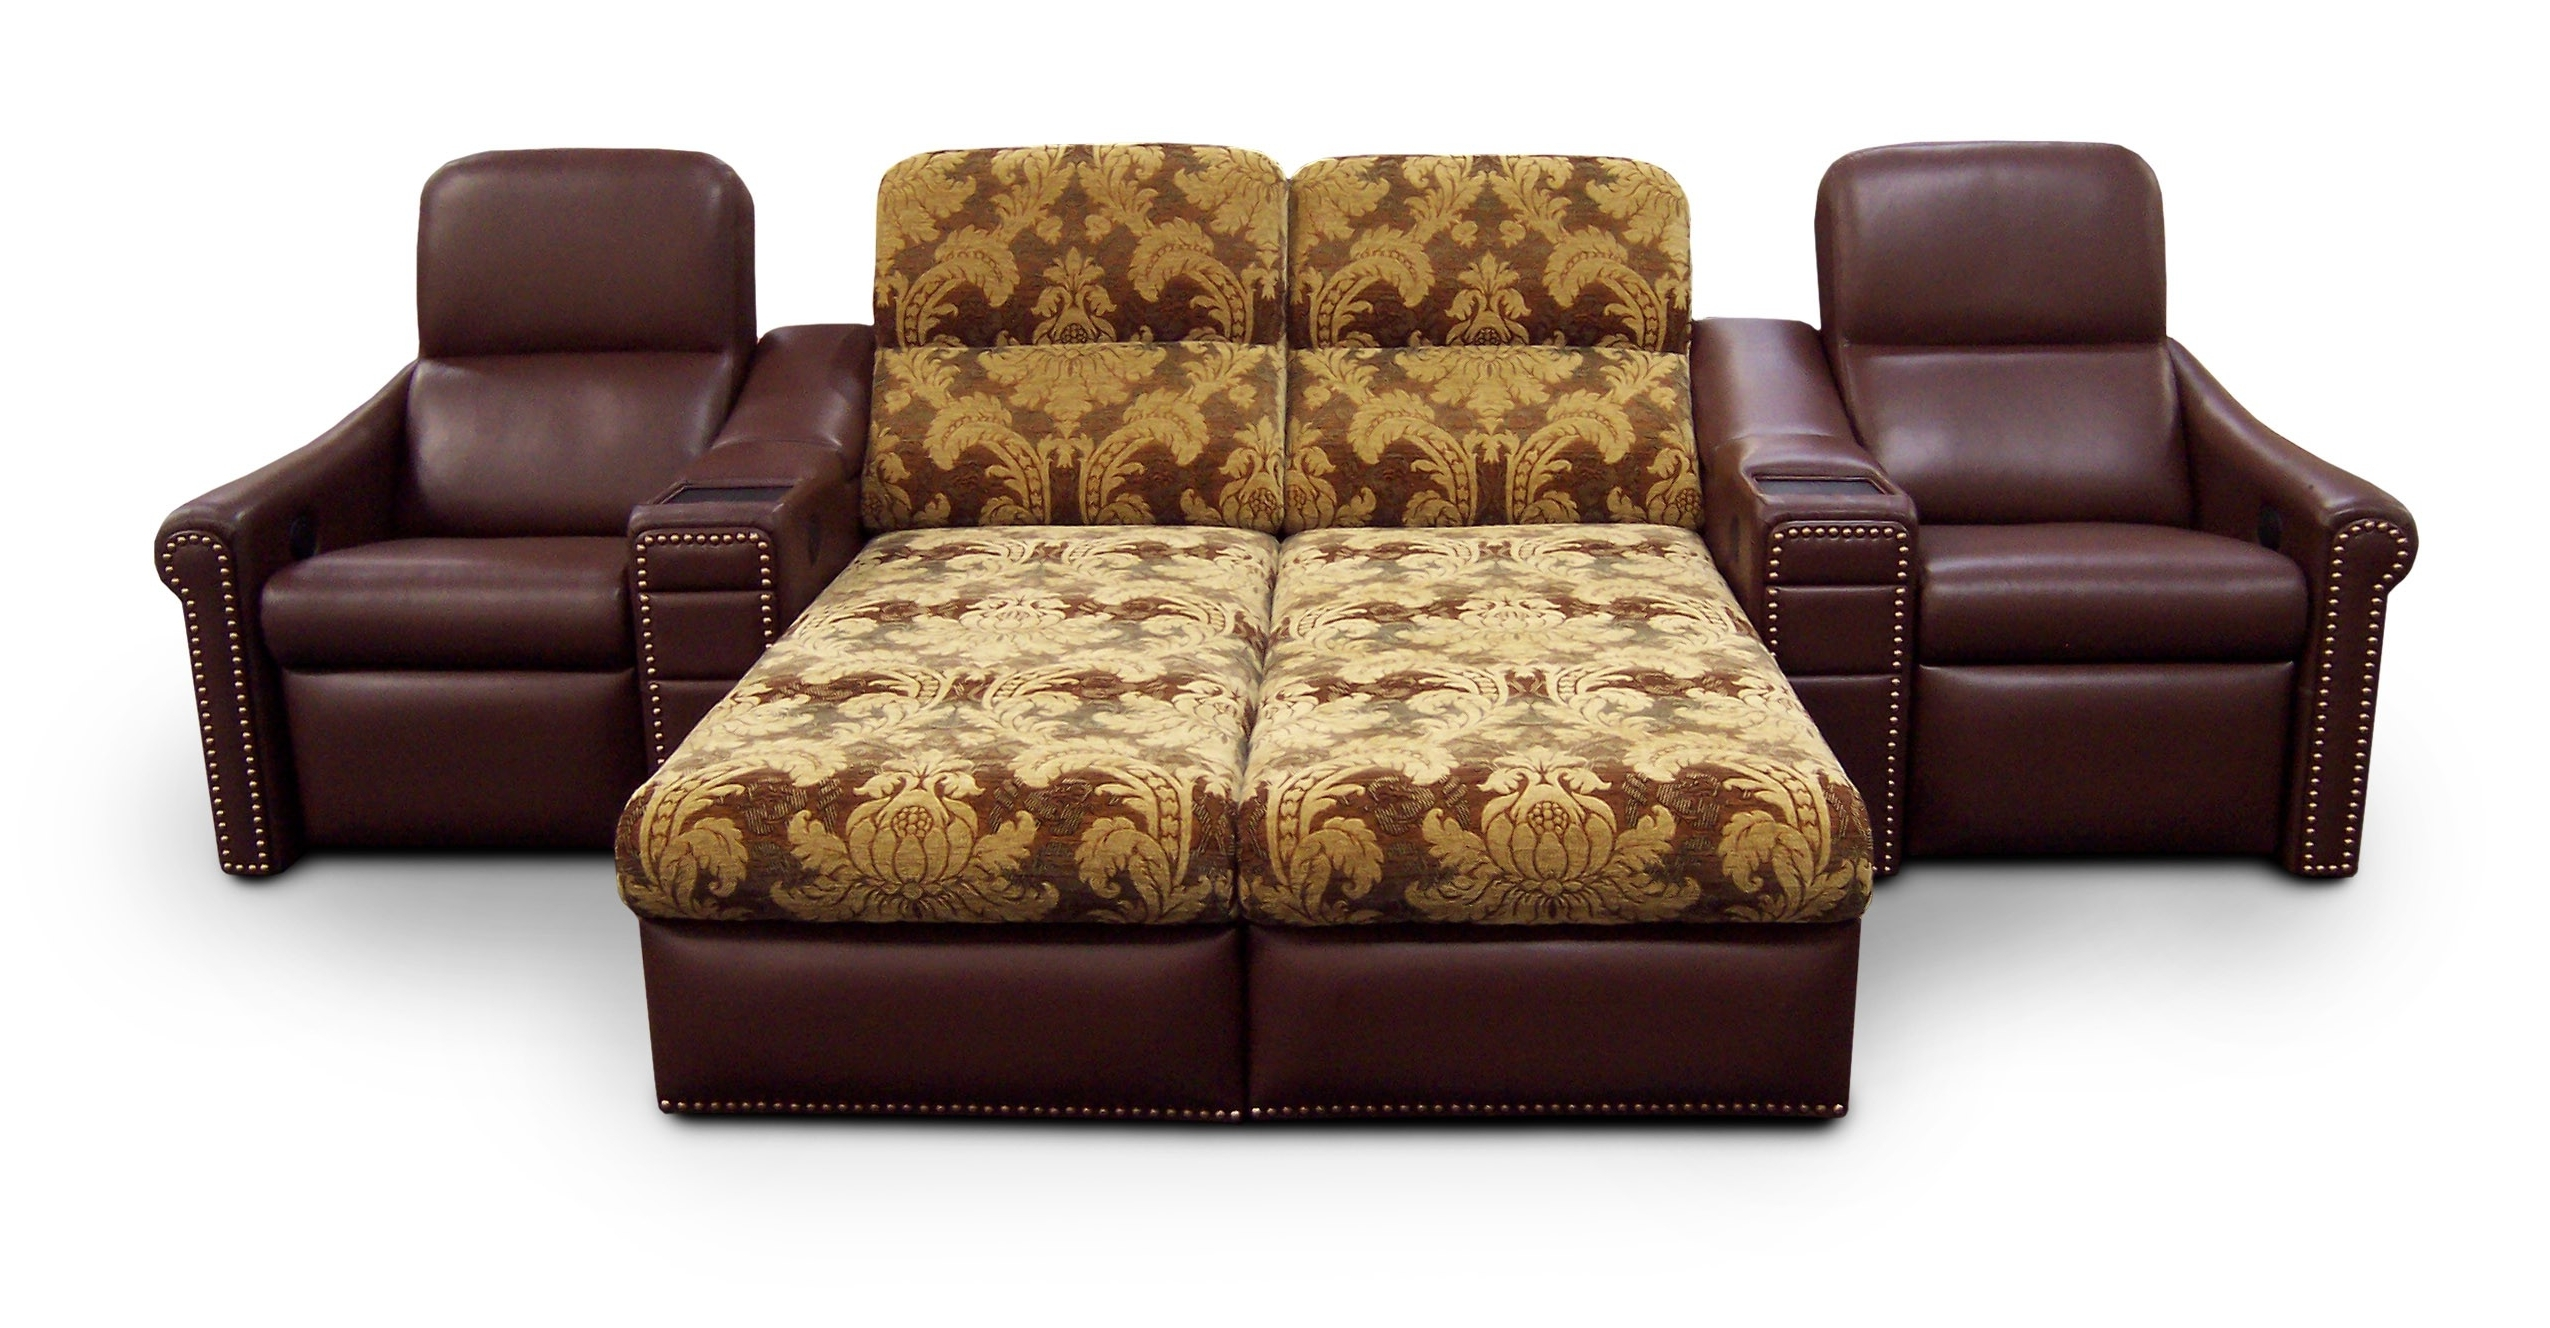 Funiture: Sleeper Sofa Ideas For Living Room Using Brown Leather In Fashionable Chaise Lounge Sleeper Sofas (View 6 of 15)